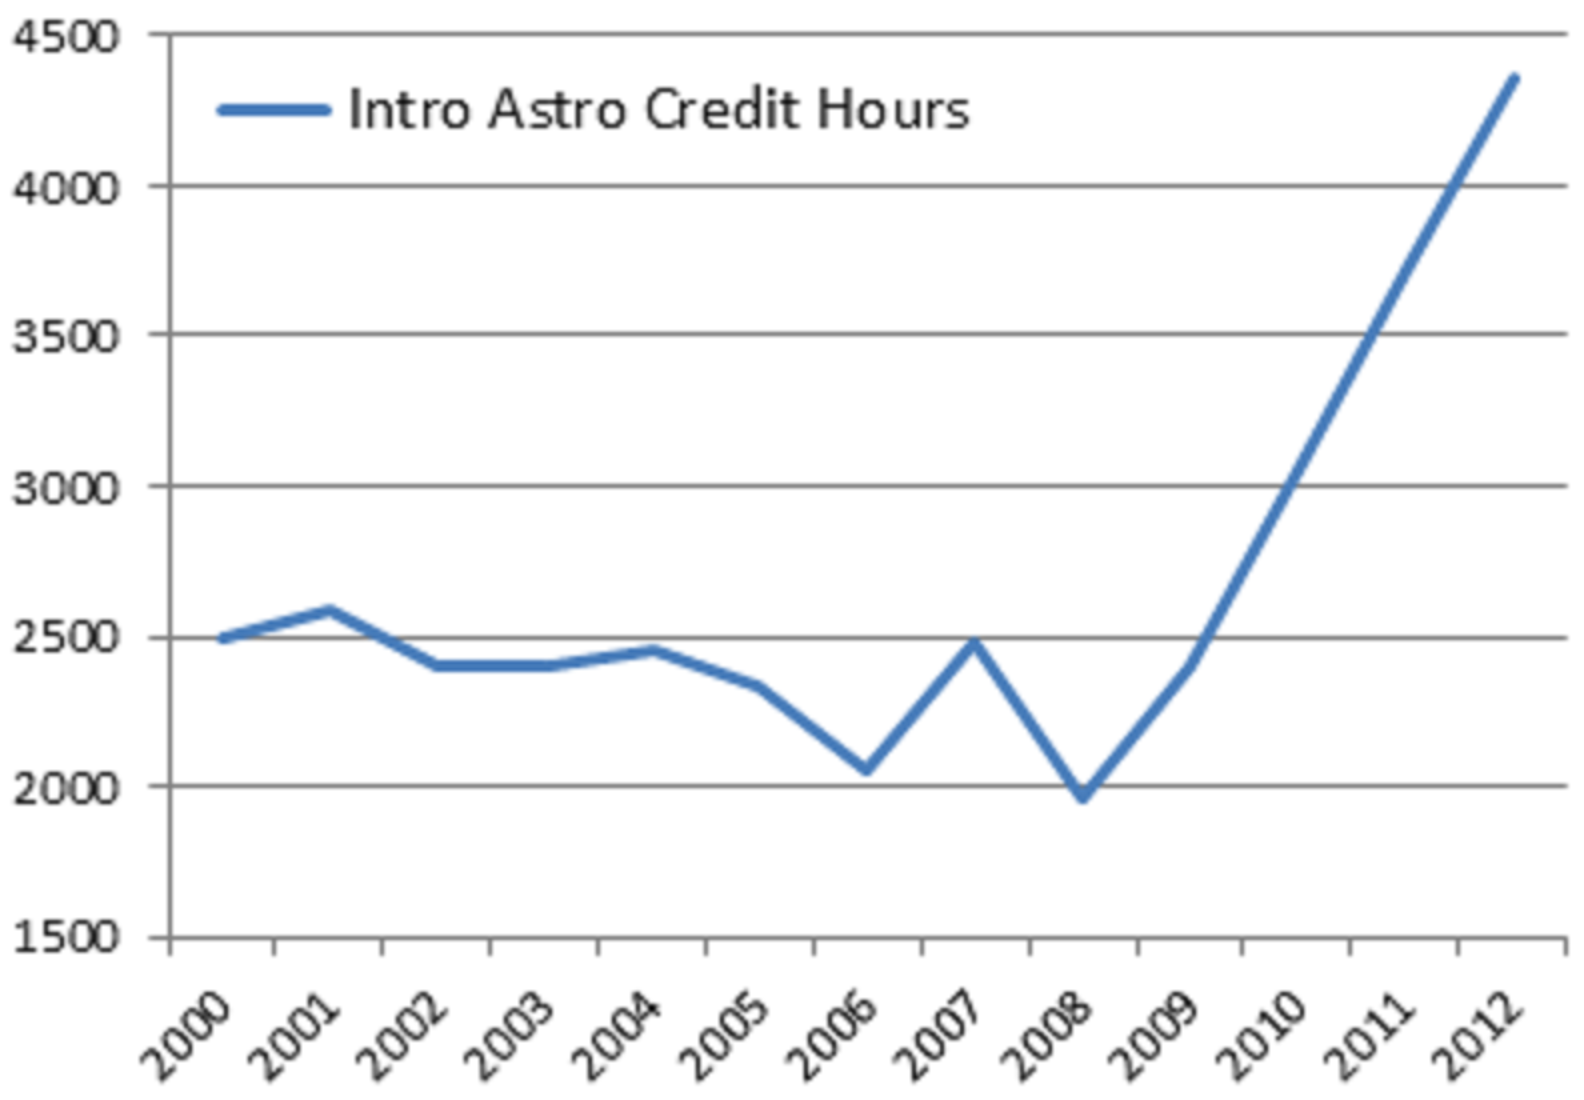 UNC-Chapel Hill's introductory astronomy credit hours (primarily ASTRO 101, ASTRO 102, and OPIS!).